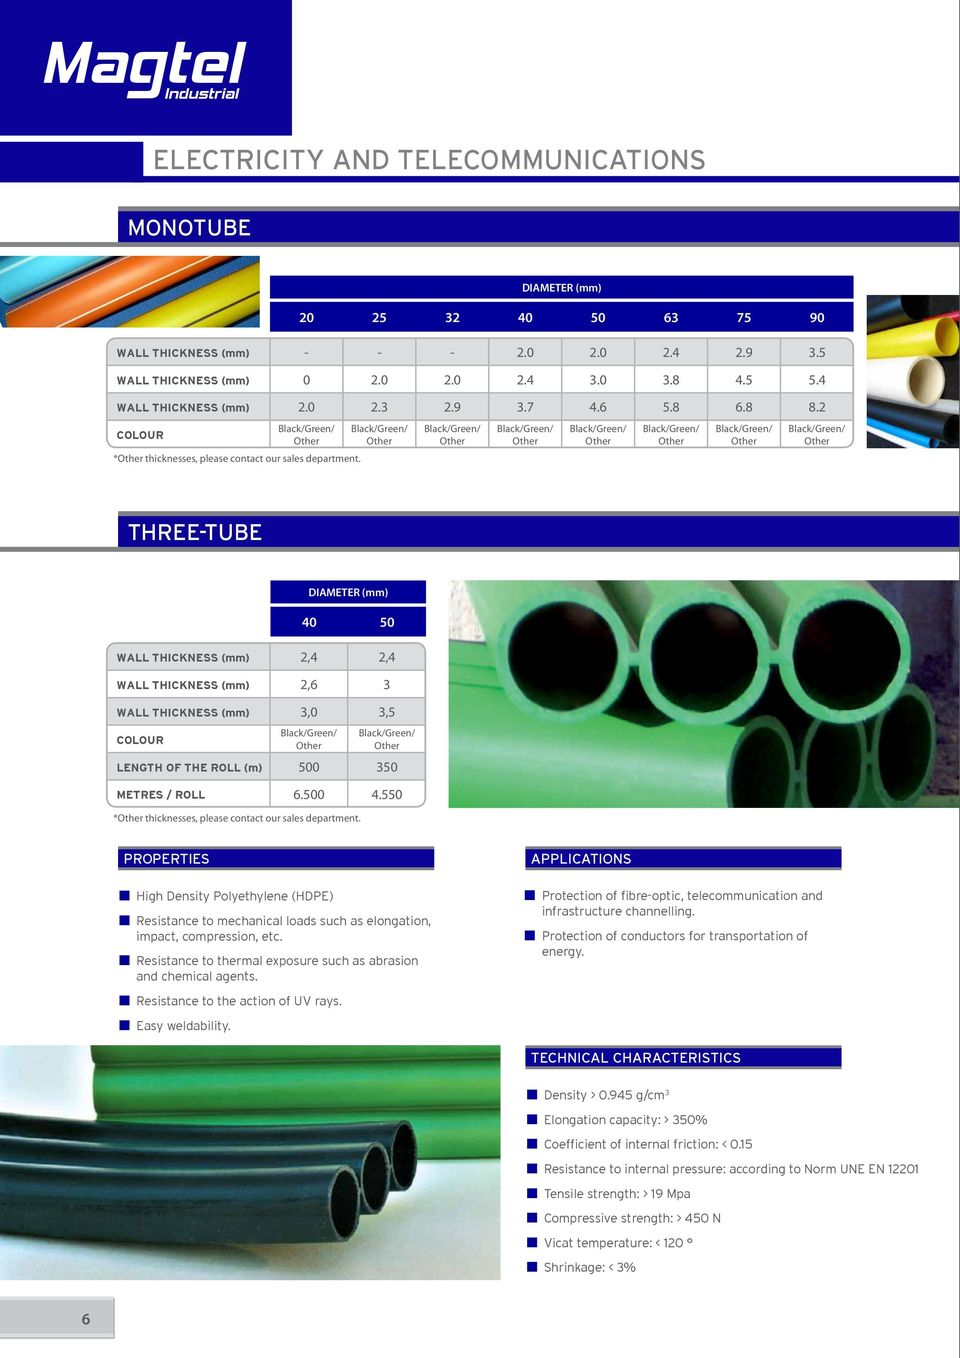 DIAMETER (mm) 20 25 32 40 50 63 75 90 THREE-TUBE WALL THICKNESS (mm) 2,4 2,4 WALL THICKNESS (mm) 2,6 3 WALL THICKNESS (mm) 3,0 3,5 COLOUR DIAMETER (mm) 40 50 LENGTH OF THE ROLL (m) 500 350 METRES /